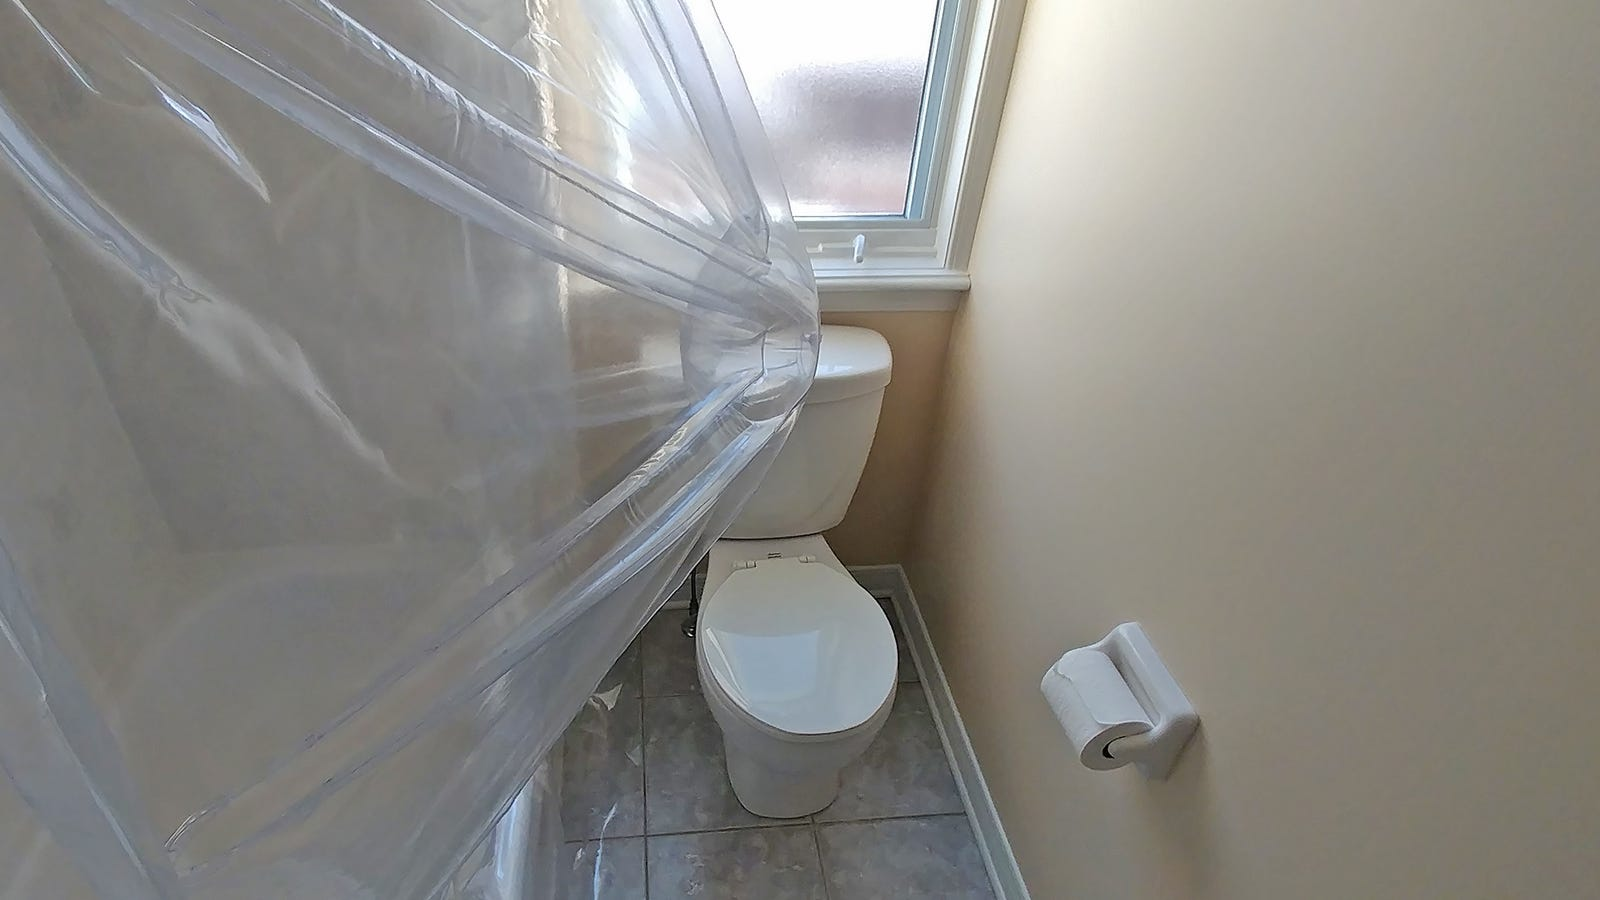 When extended, the Aircurv's inflatable batten will gobble up a bit of space, especially in an already cramped bathroom.